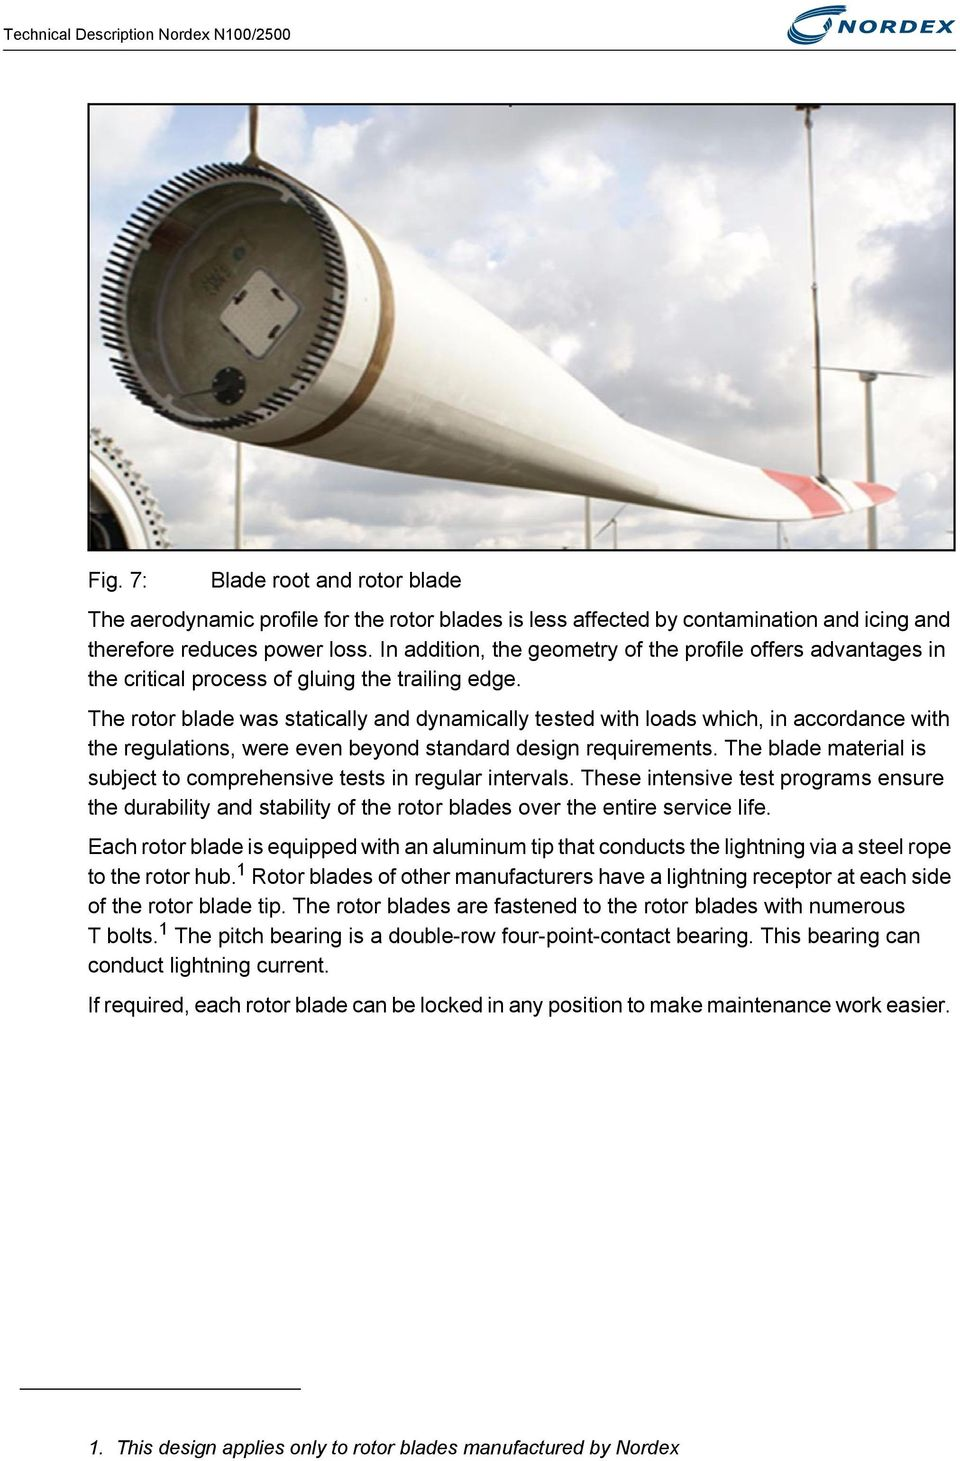 The rotor blade was statically and dynamically tested with loads which, in accordance with the regulations, were even beyond standard design requirements.